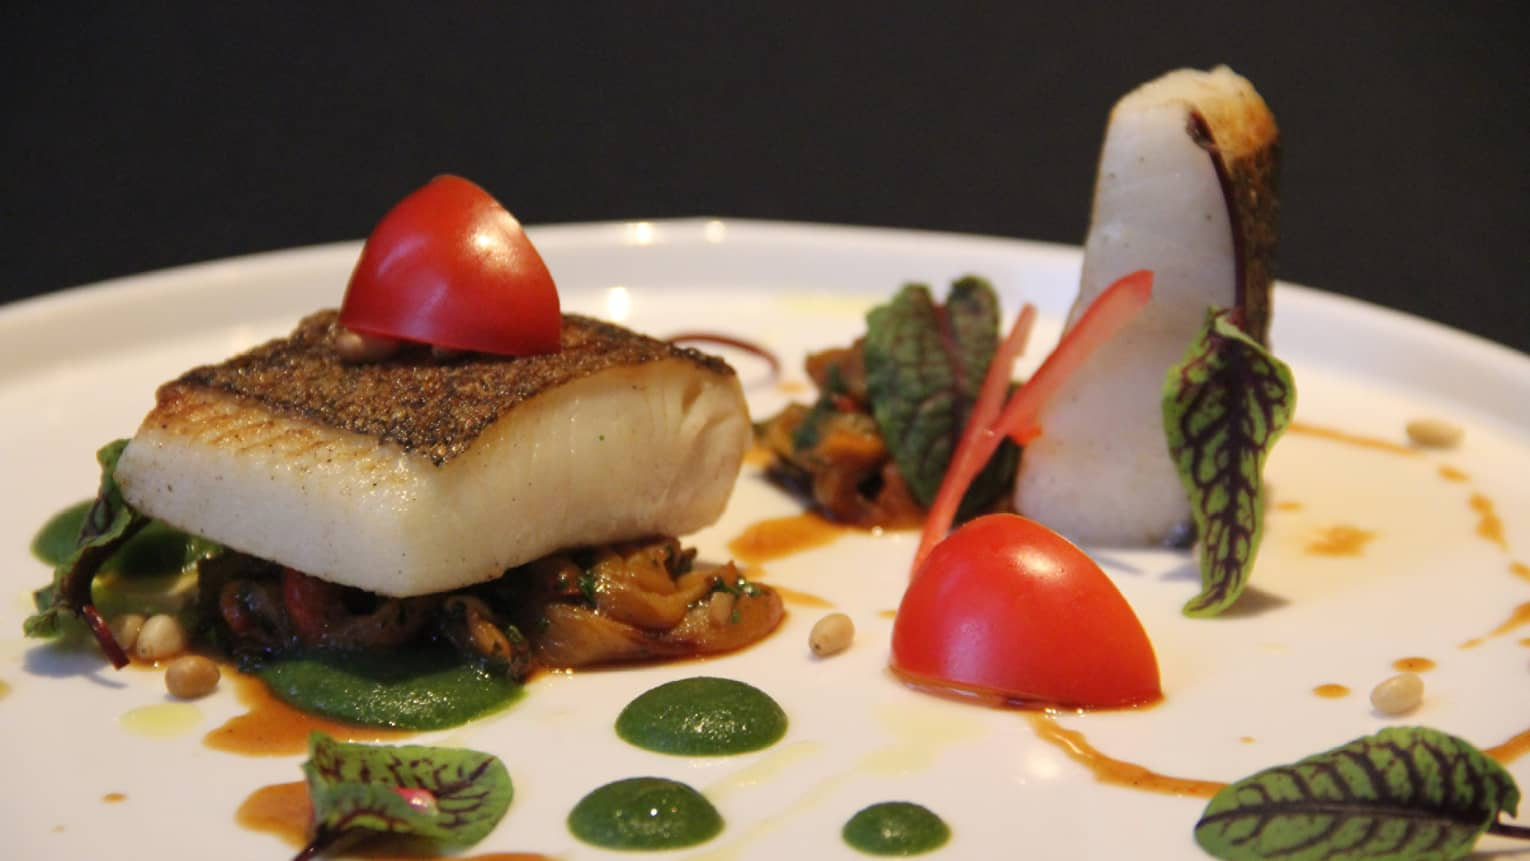 Seared halibut fish filet on plates with vegetables, sauce, herbs